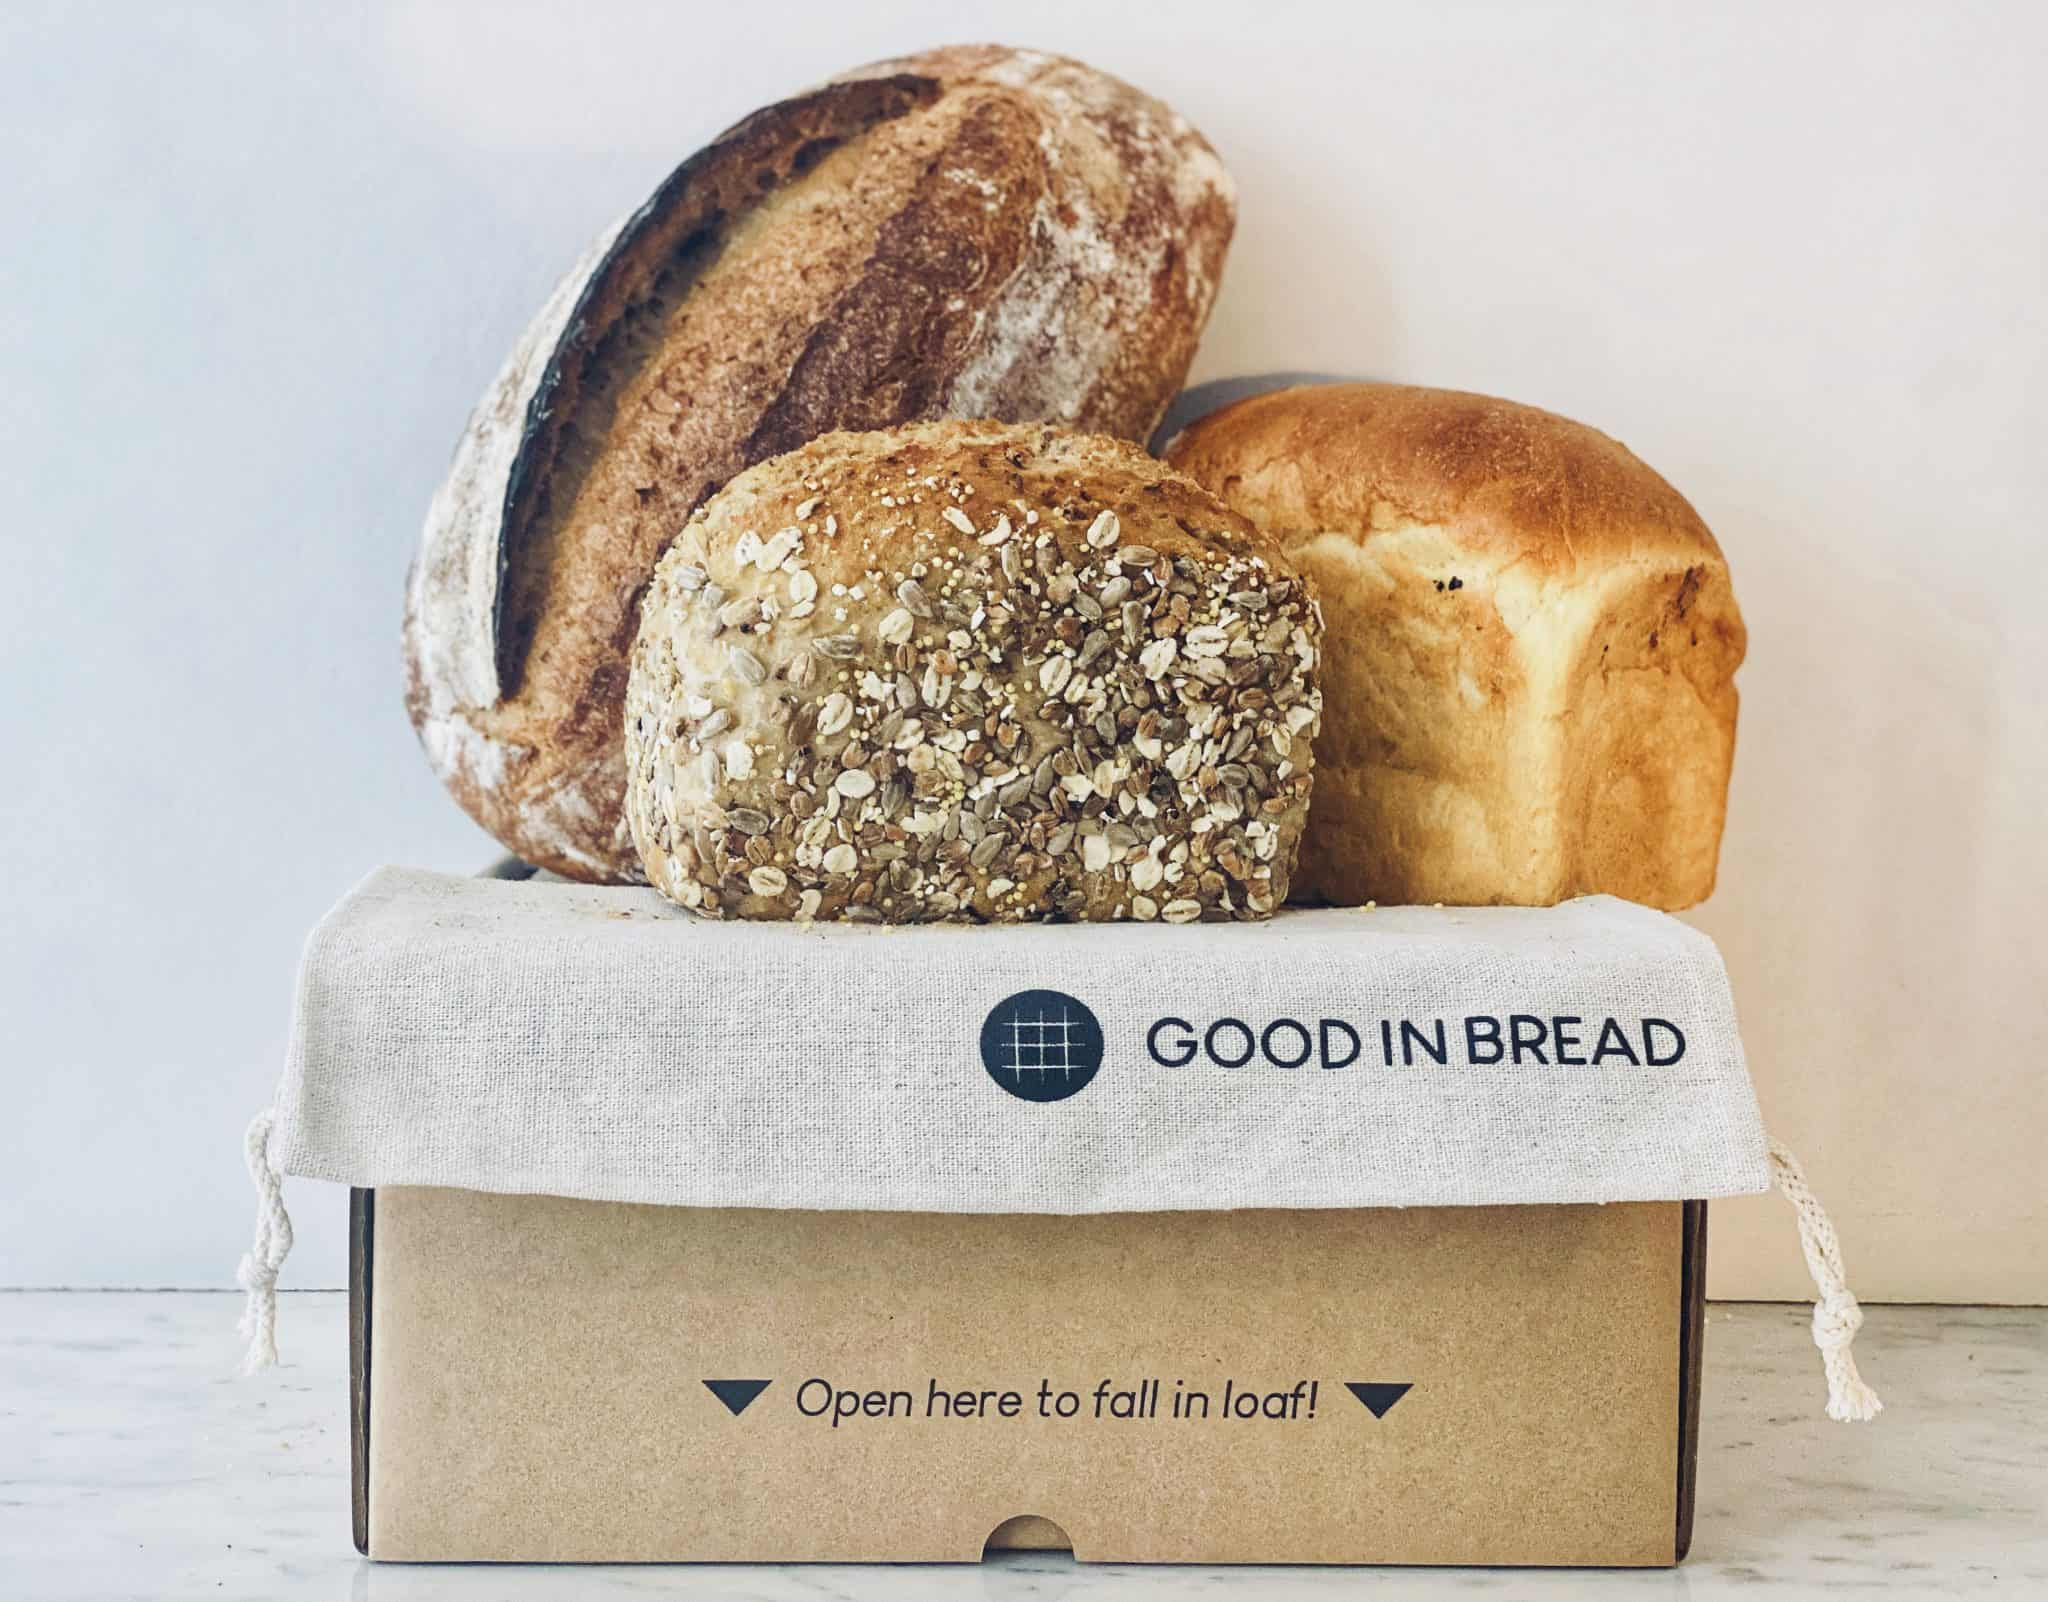 Good in Bread Food & Drink Christmas Gift Guide